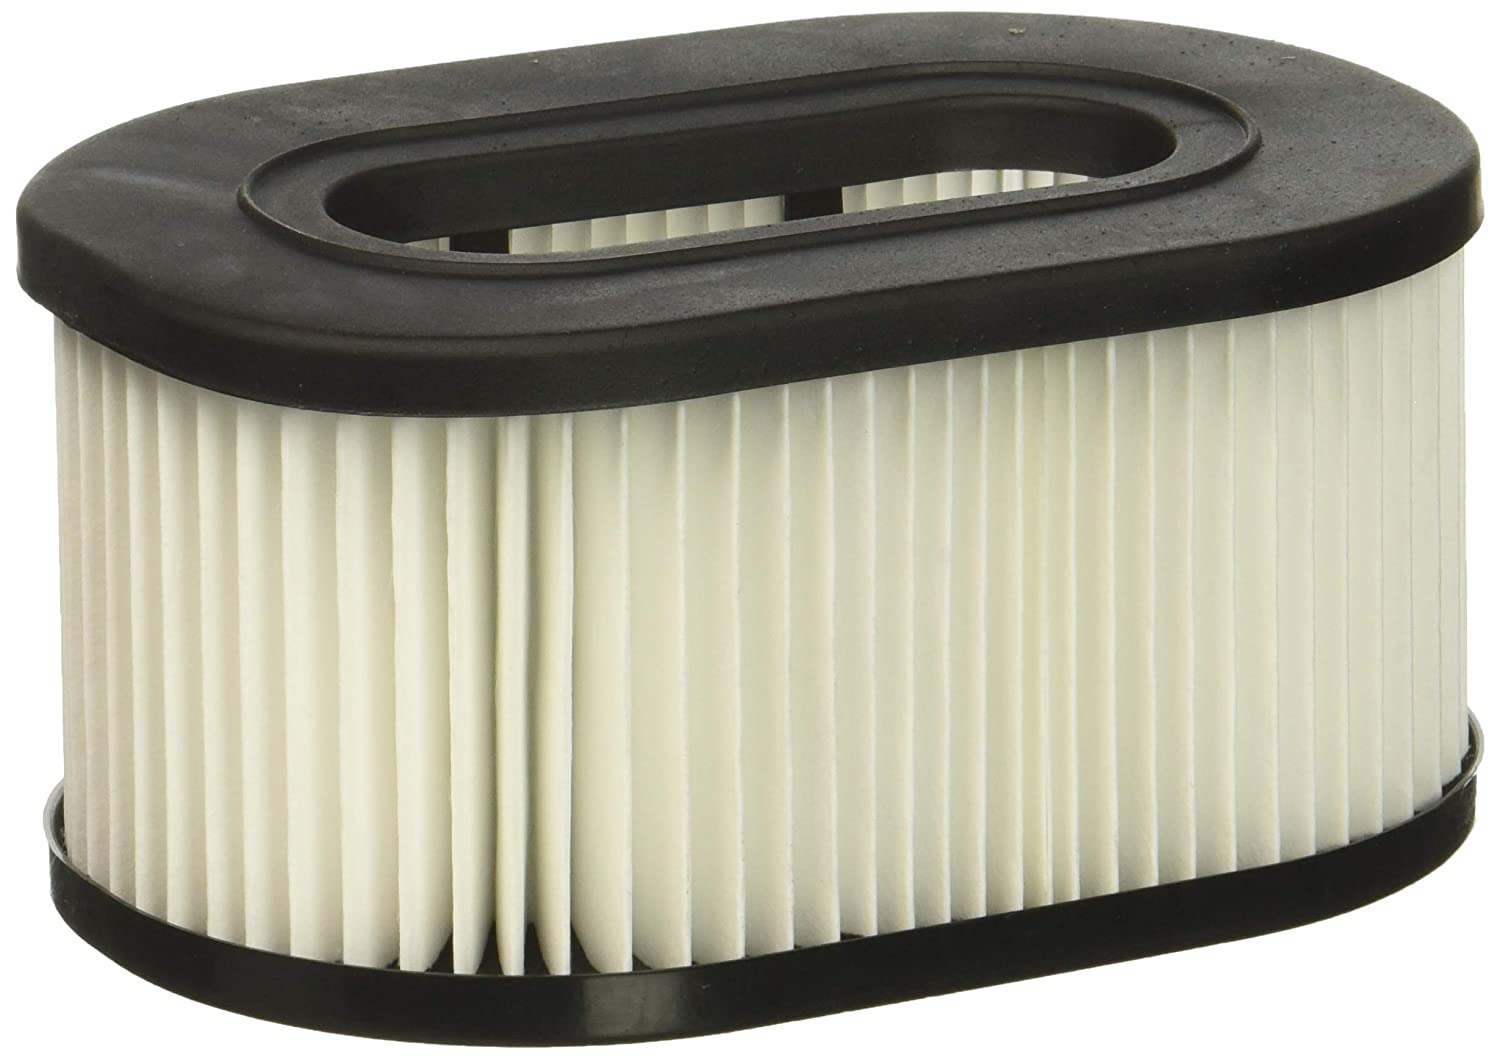 EnviroCare Replacement HEPA Vacuum Filters for Hoover Fold Away Turbo Power 3100 HEPA Pleated filter, Upright, Bageless, Widepath Vacuum Cleaners 3 Filters